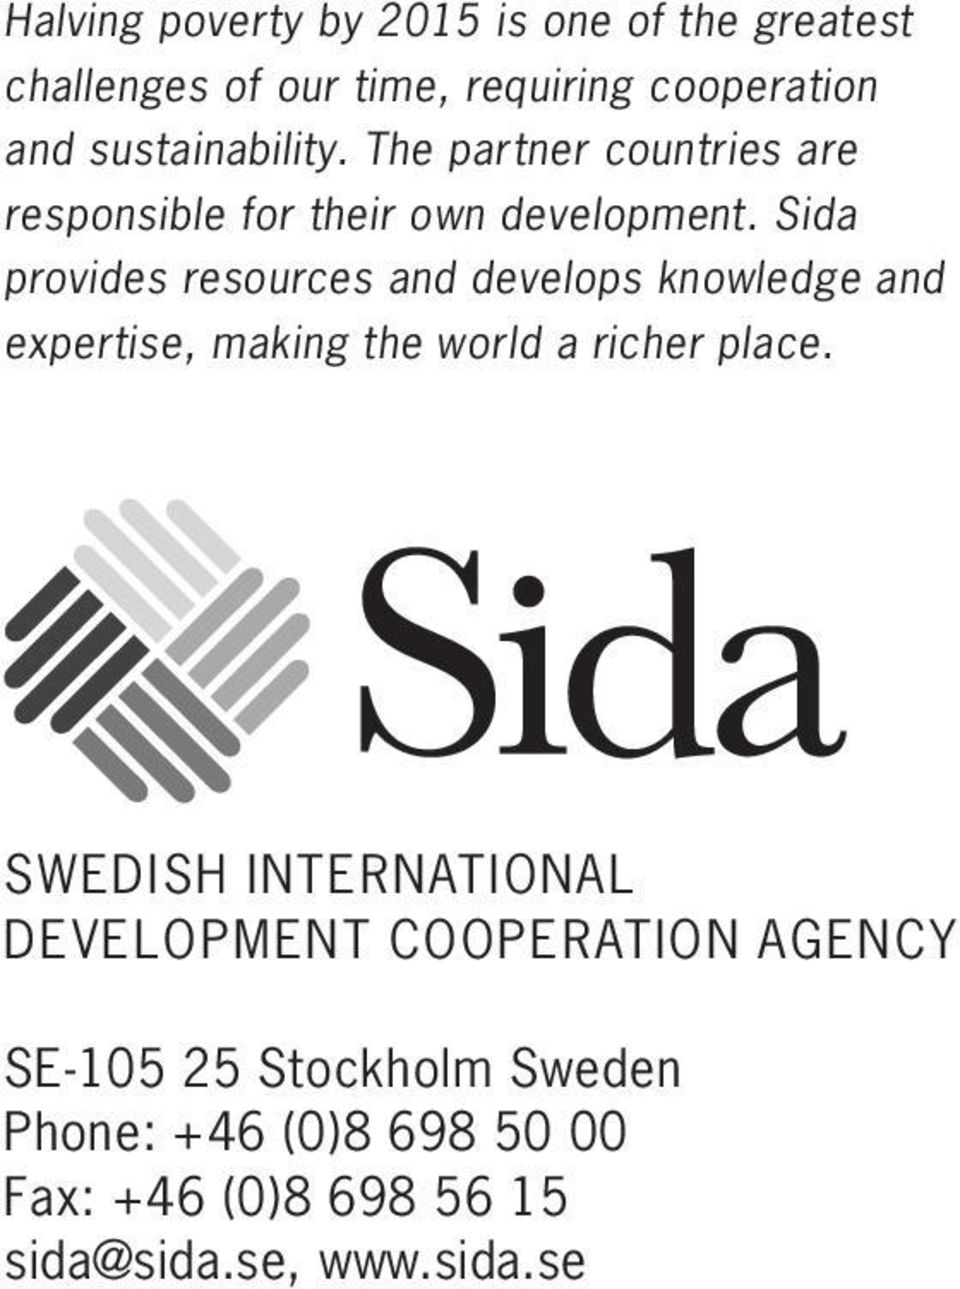 Sida provides resources and develops knowledge and expertise, making the world a richer place.